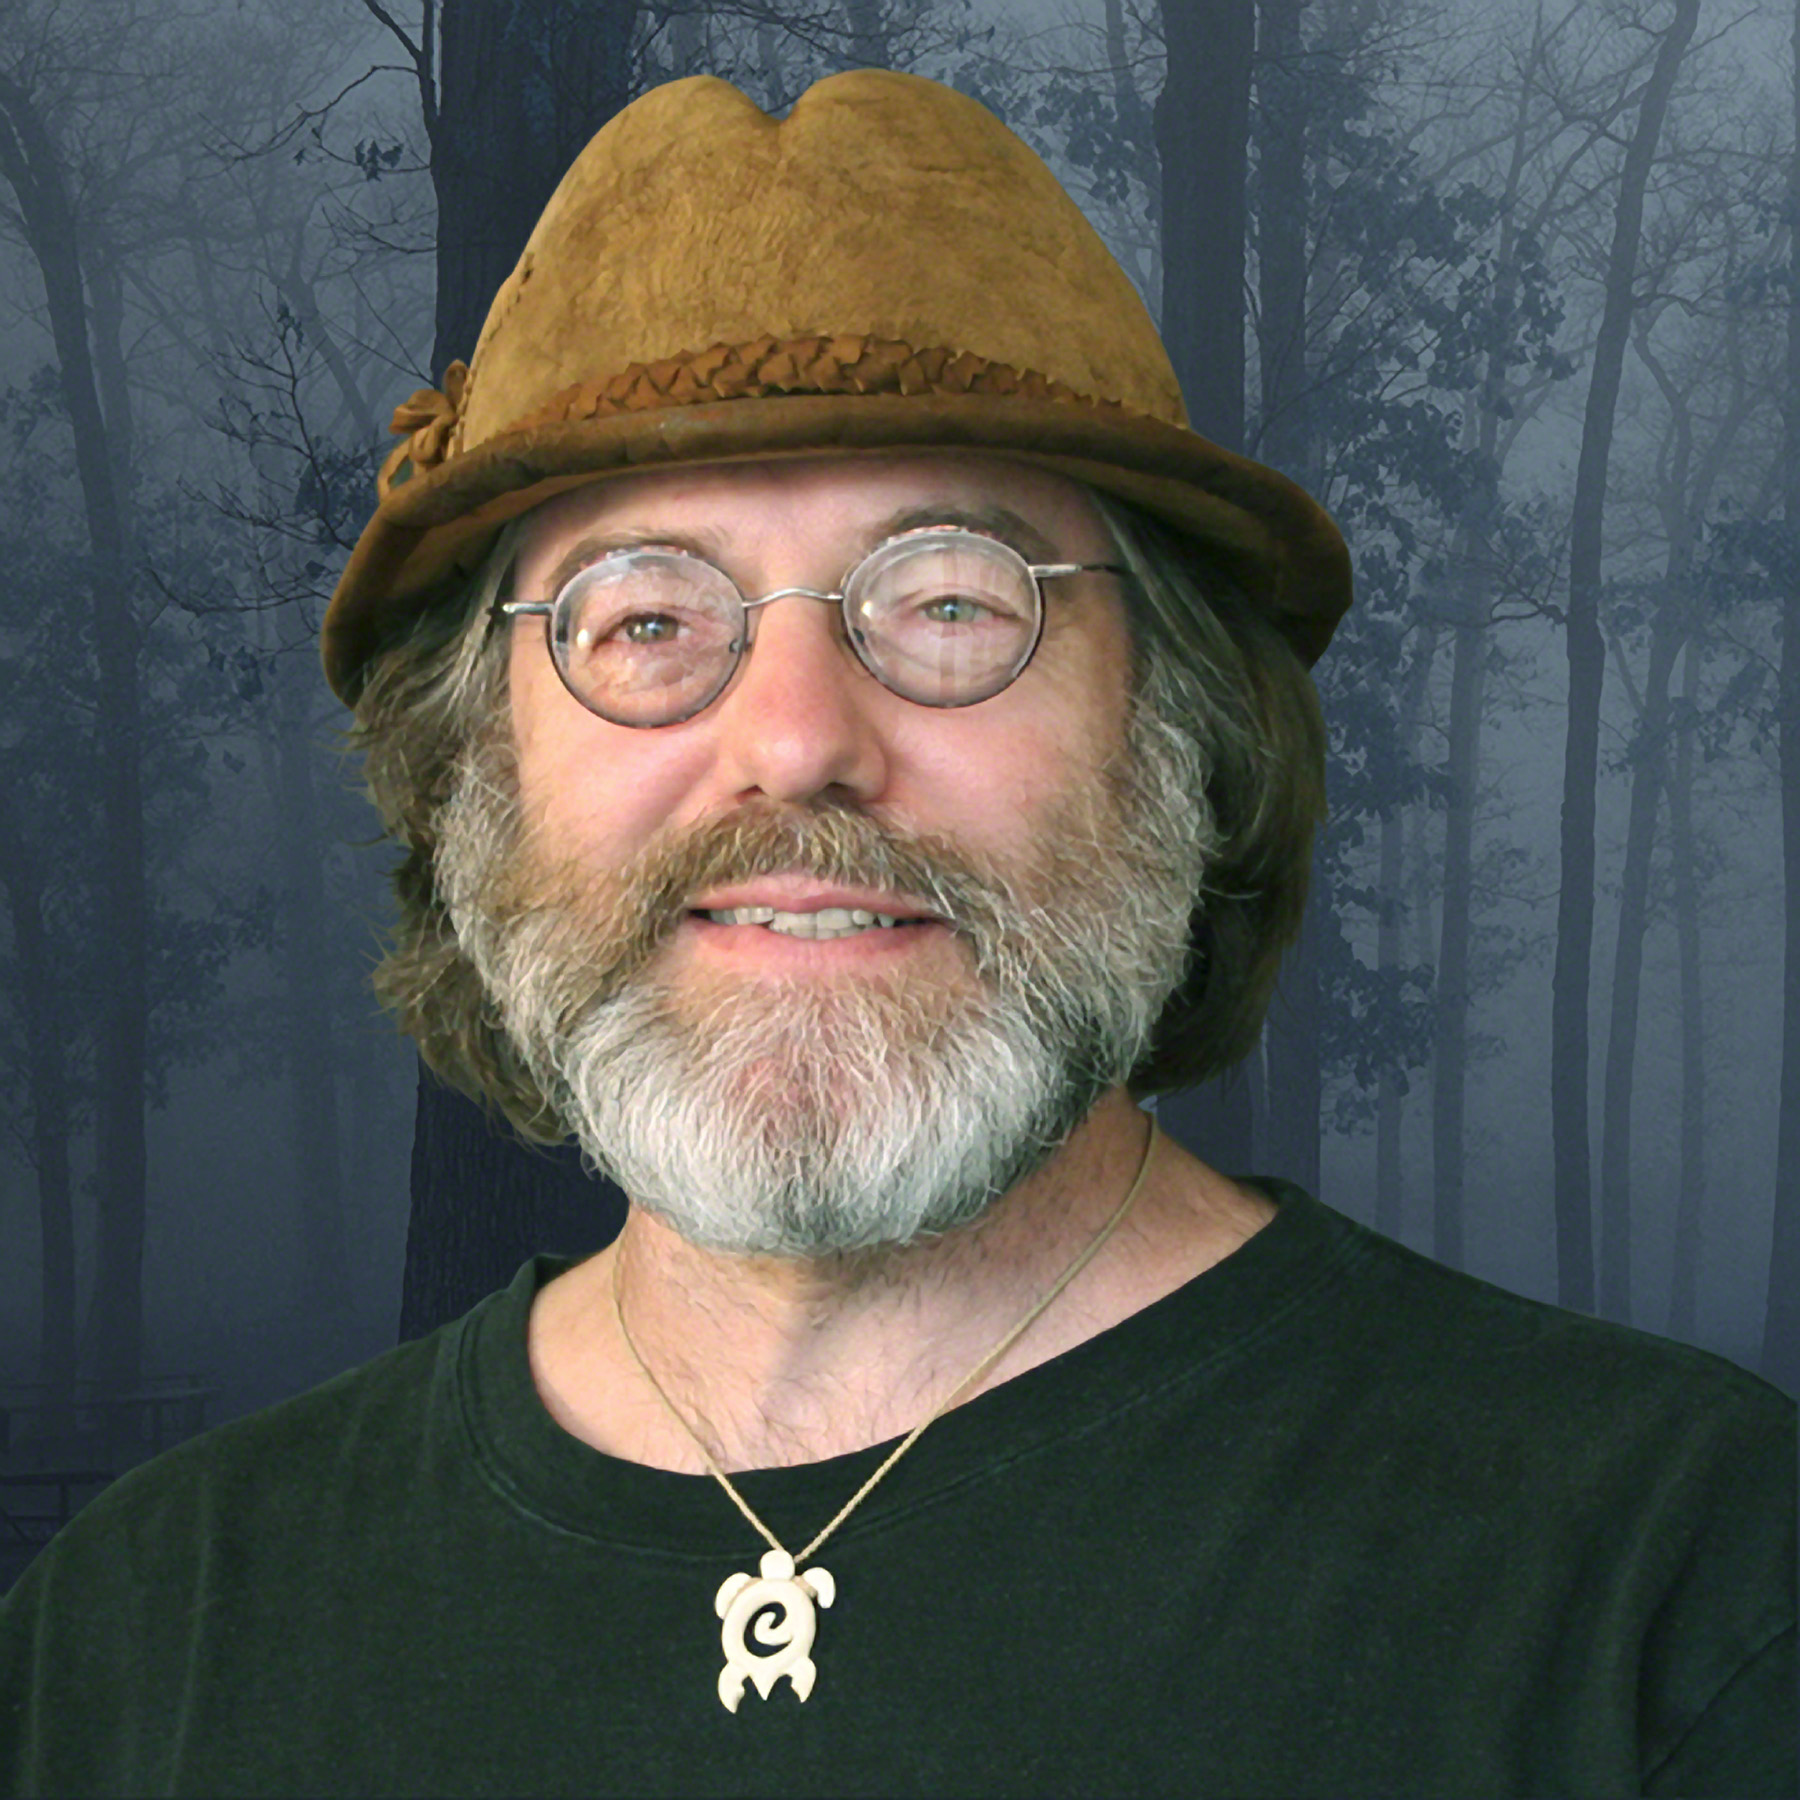 Tedmed >> TEDMED: Can Mushrooms Help the Immune System Fight Cancer? Interview With Paul Stamets ...